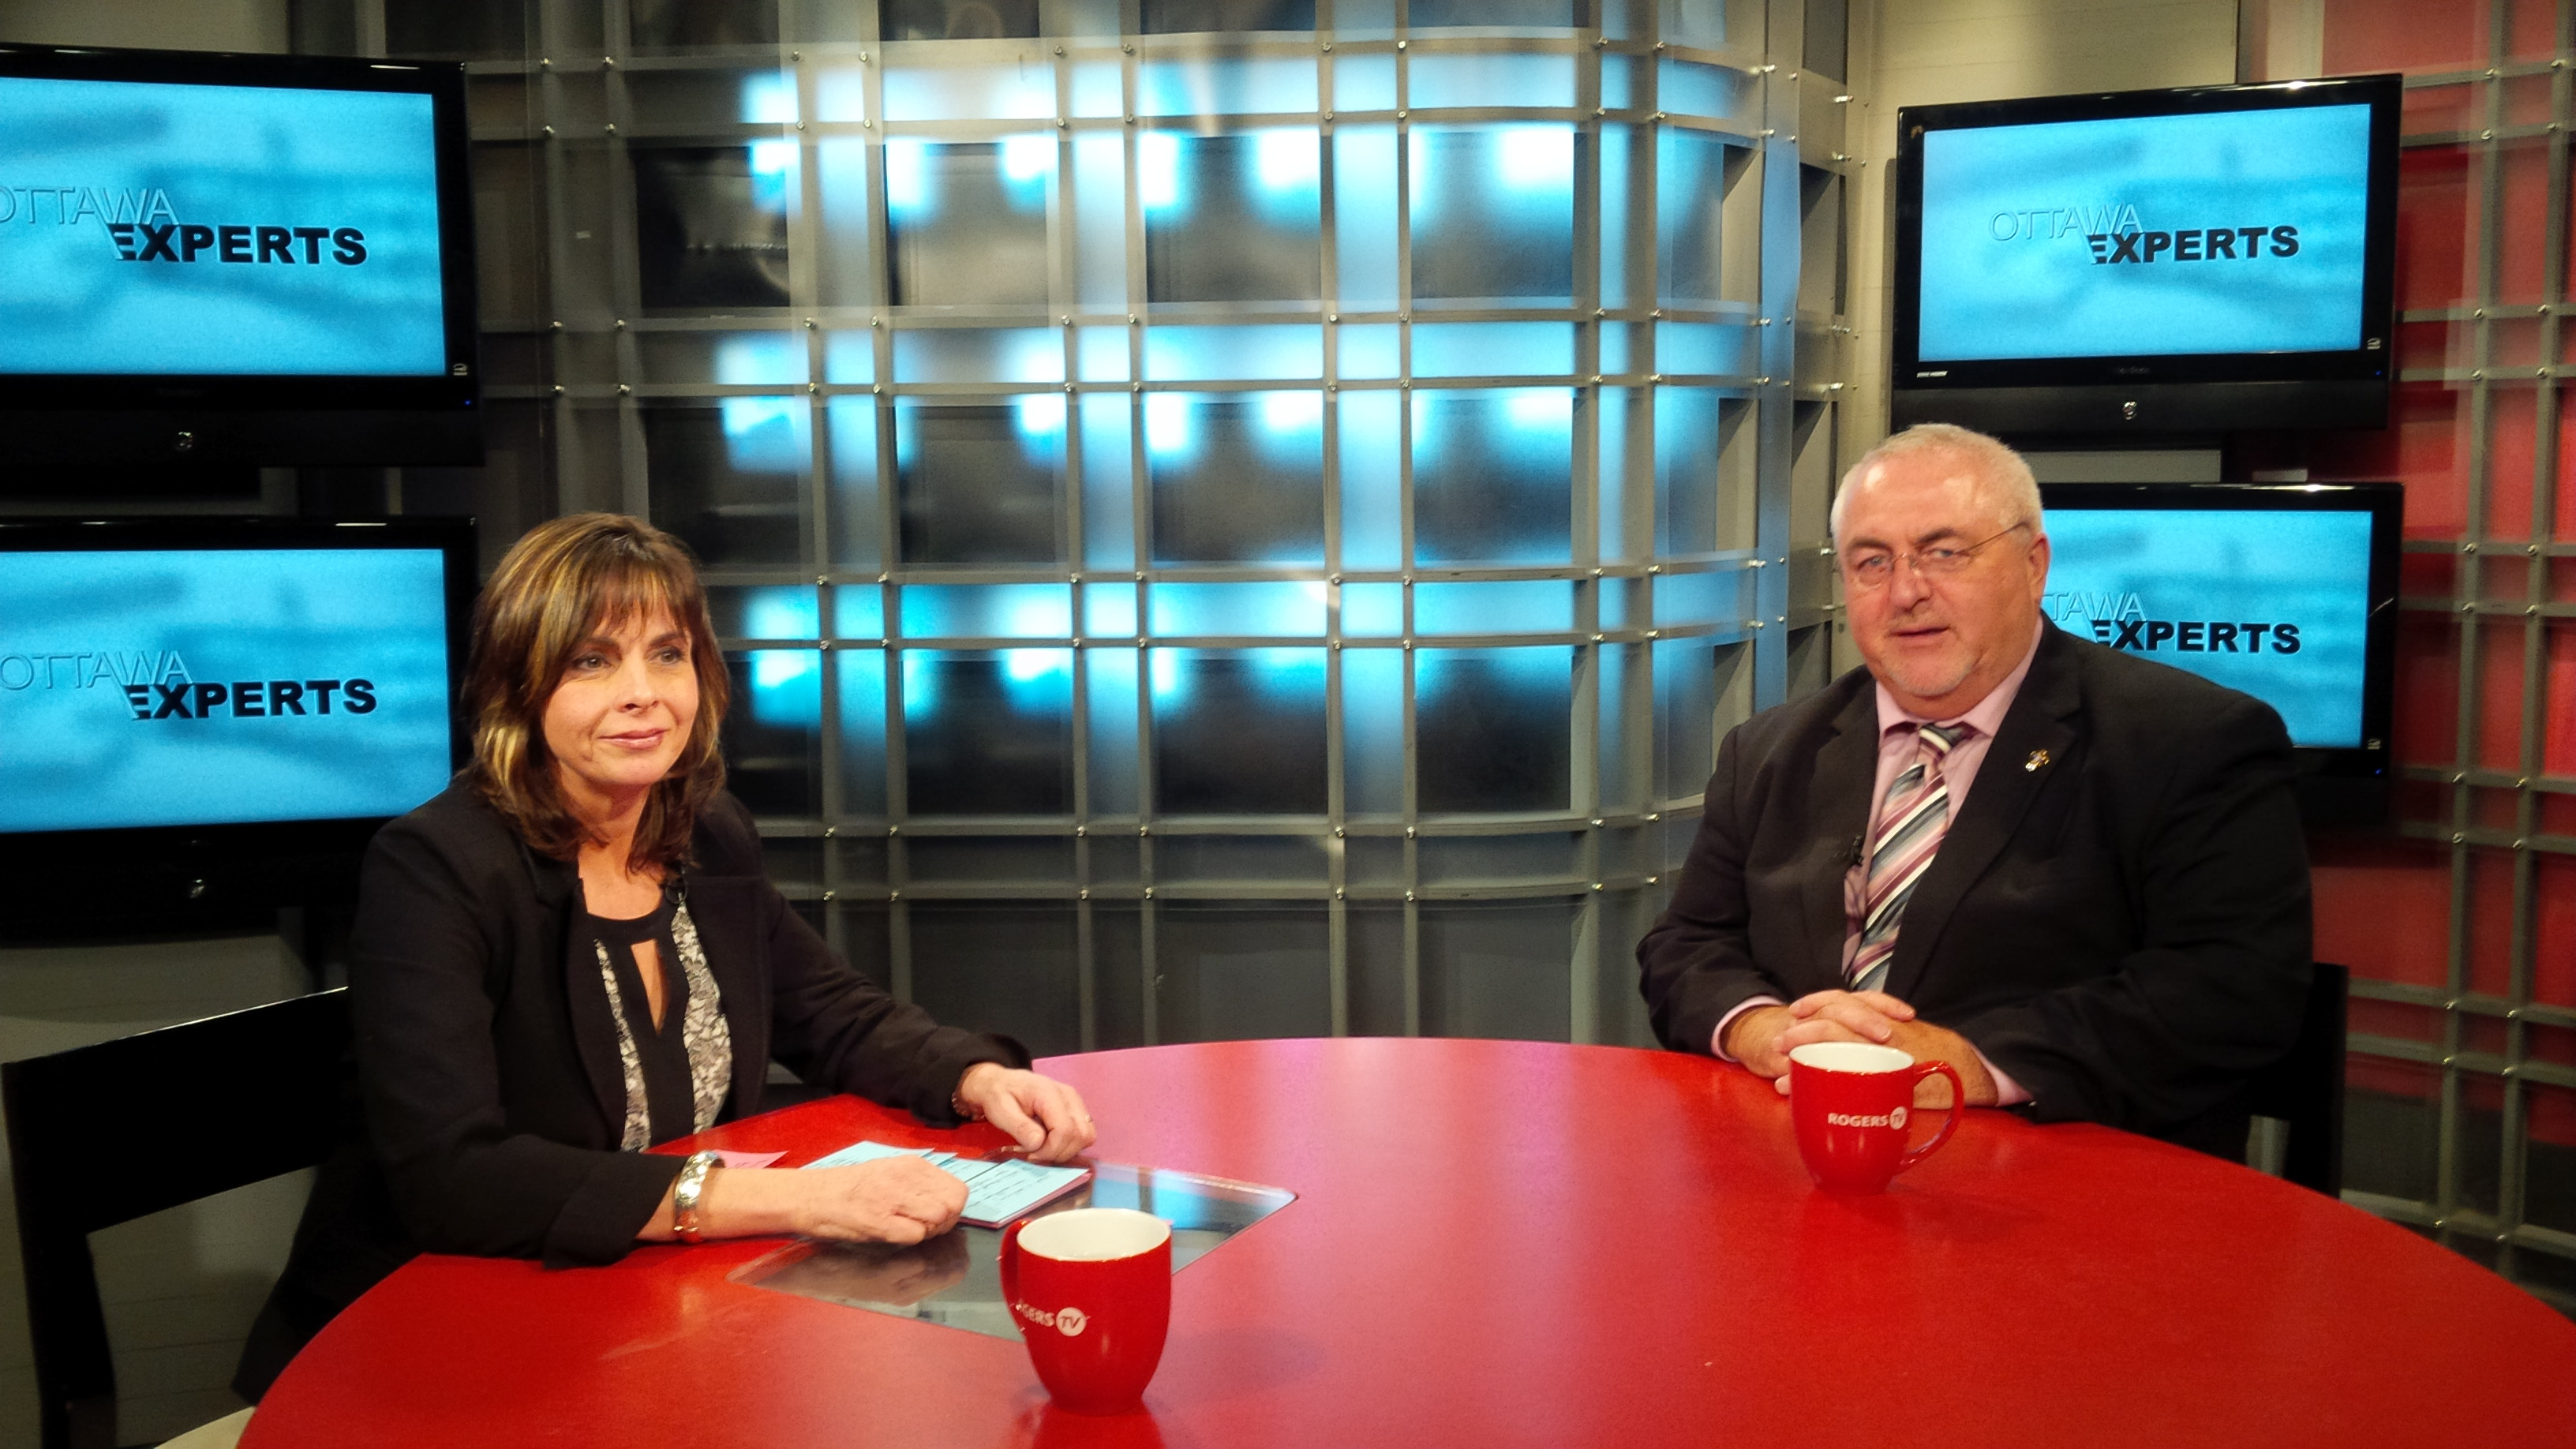 TV Rogers  Ottawa Experts